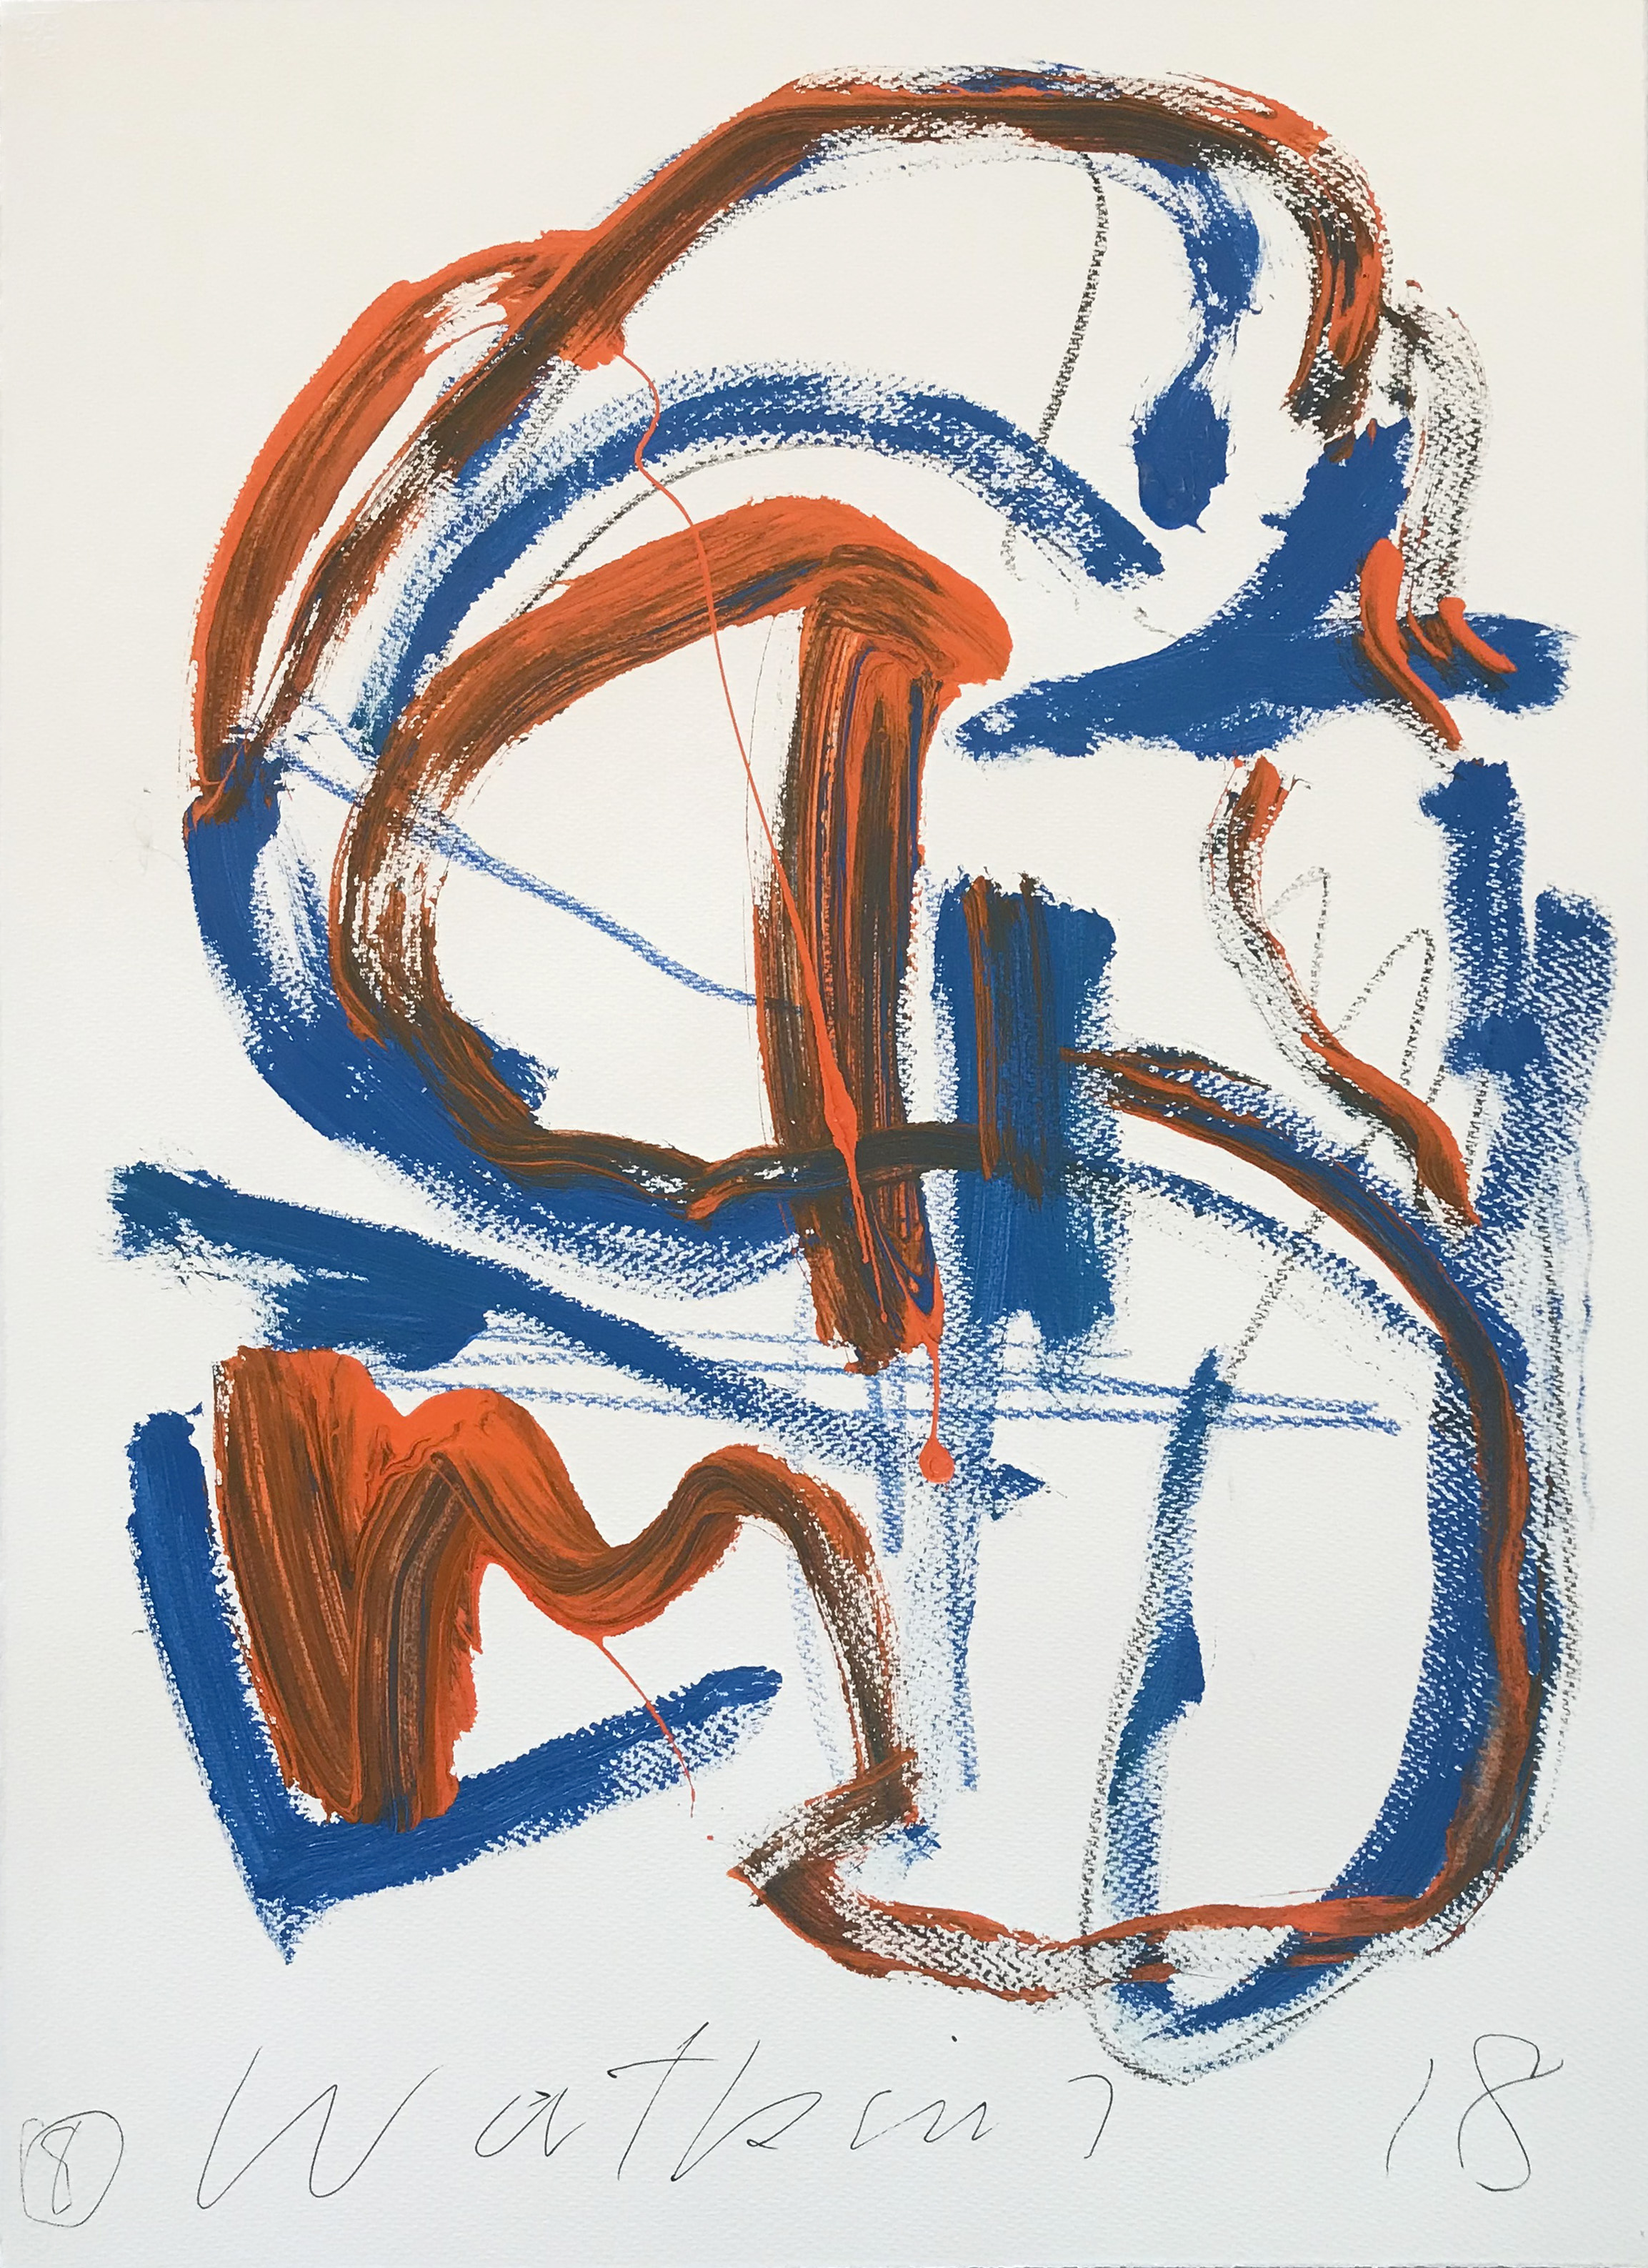 DICK WATKINS  Untitled drawing 08 , 2018 acrylic on 300gsm paper 76 x 56 cm